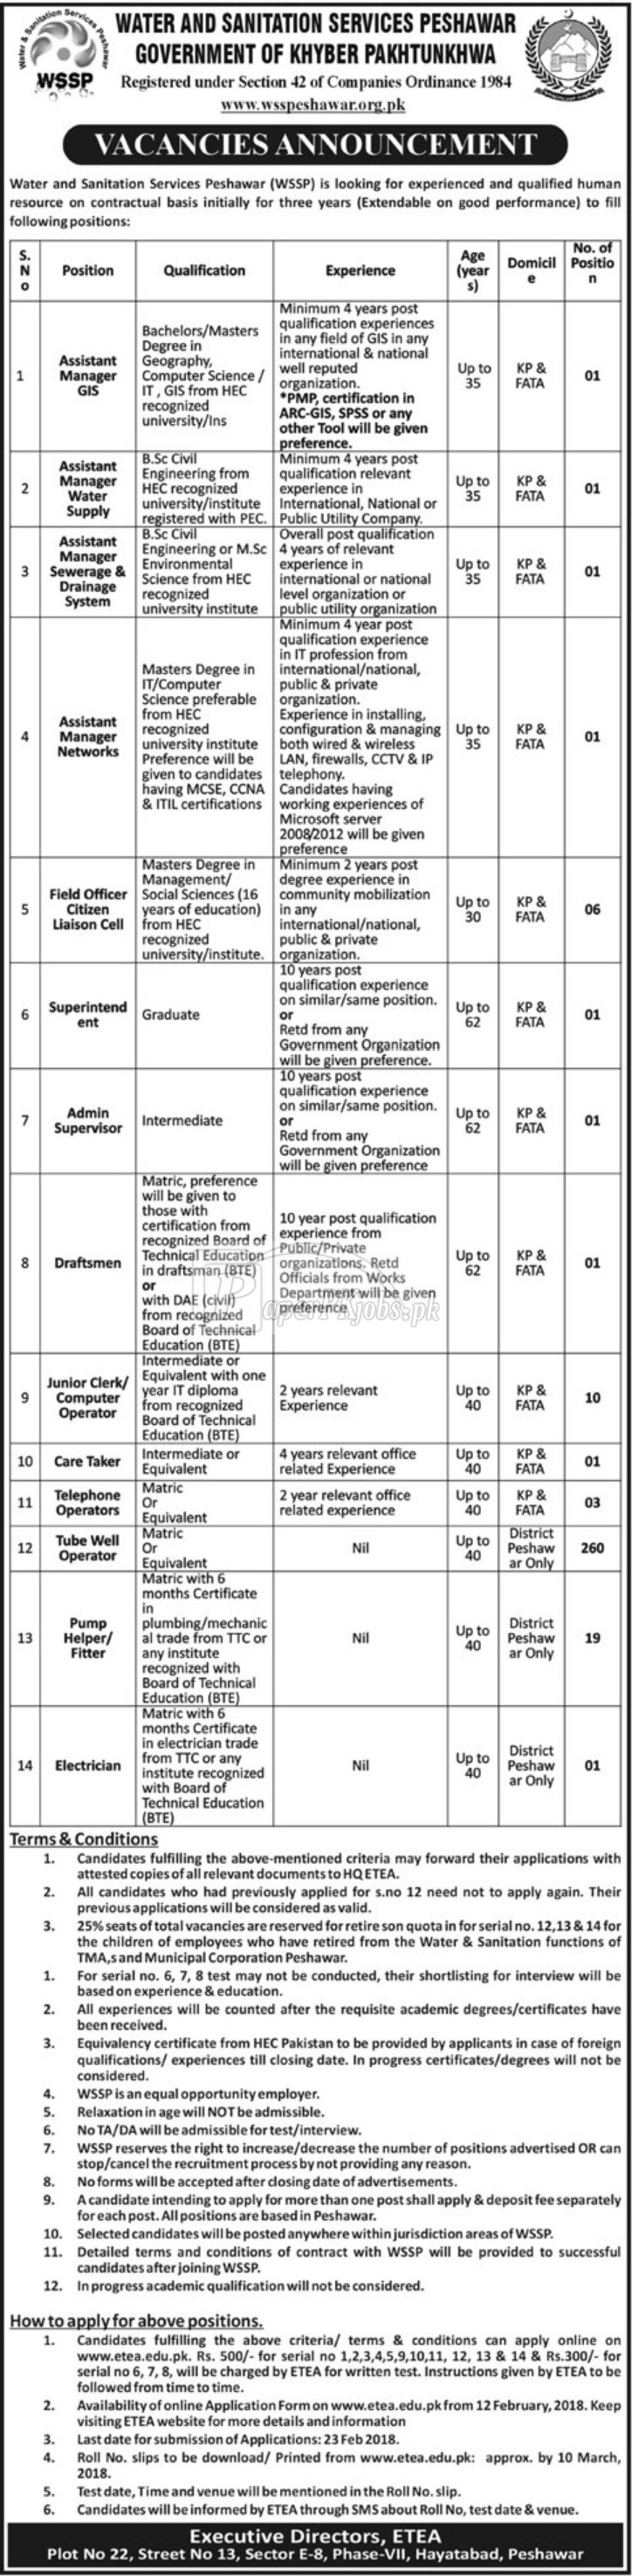 Water & Sanitation Services Peshawar WSSP ETEA Jobs 2018